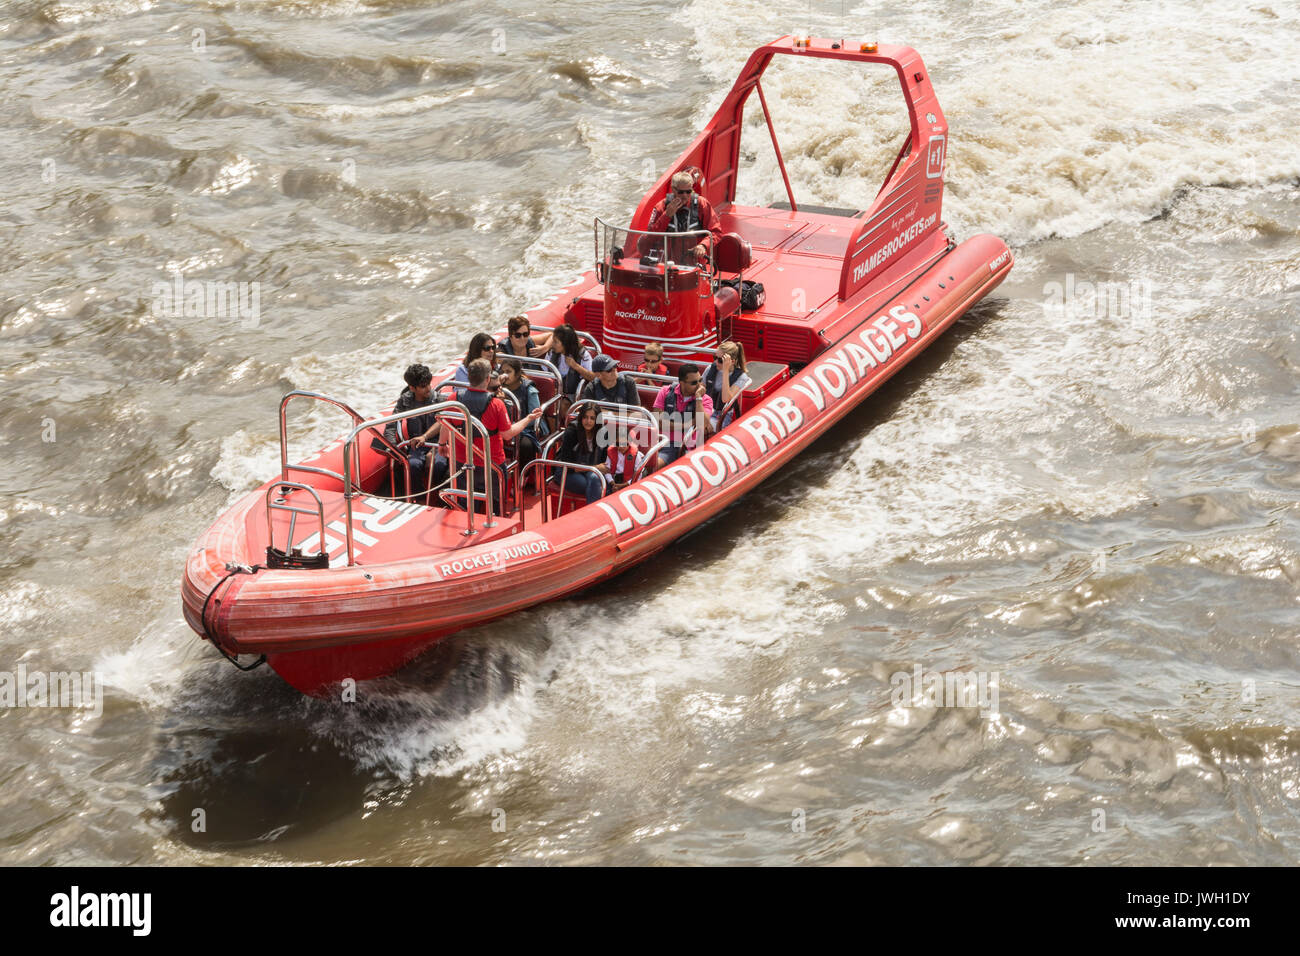 Tourists enjoying a high speed trip down the River Thames on a London Rib Voyages inflatable. London, UK. - Stock Image